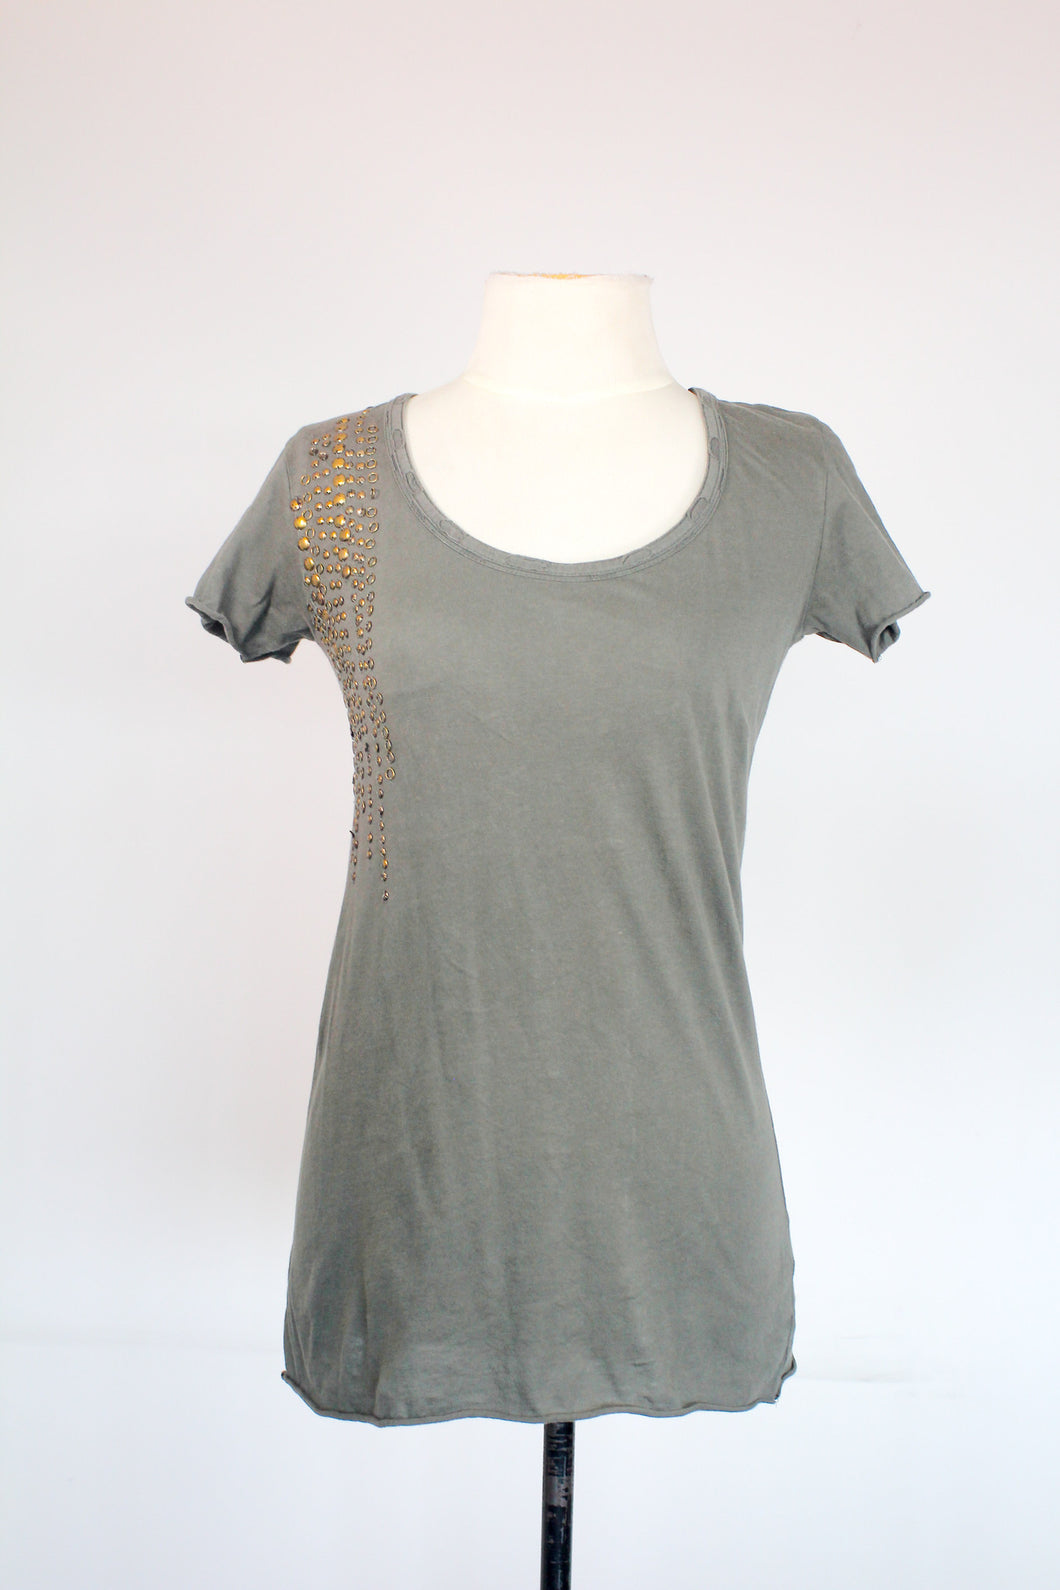 Zara Army Green Shirt with Metal Rivets